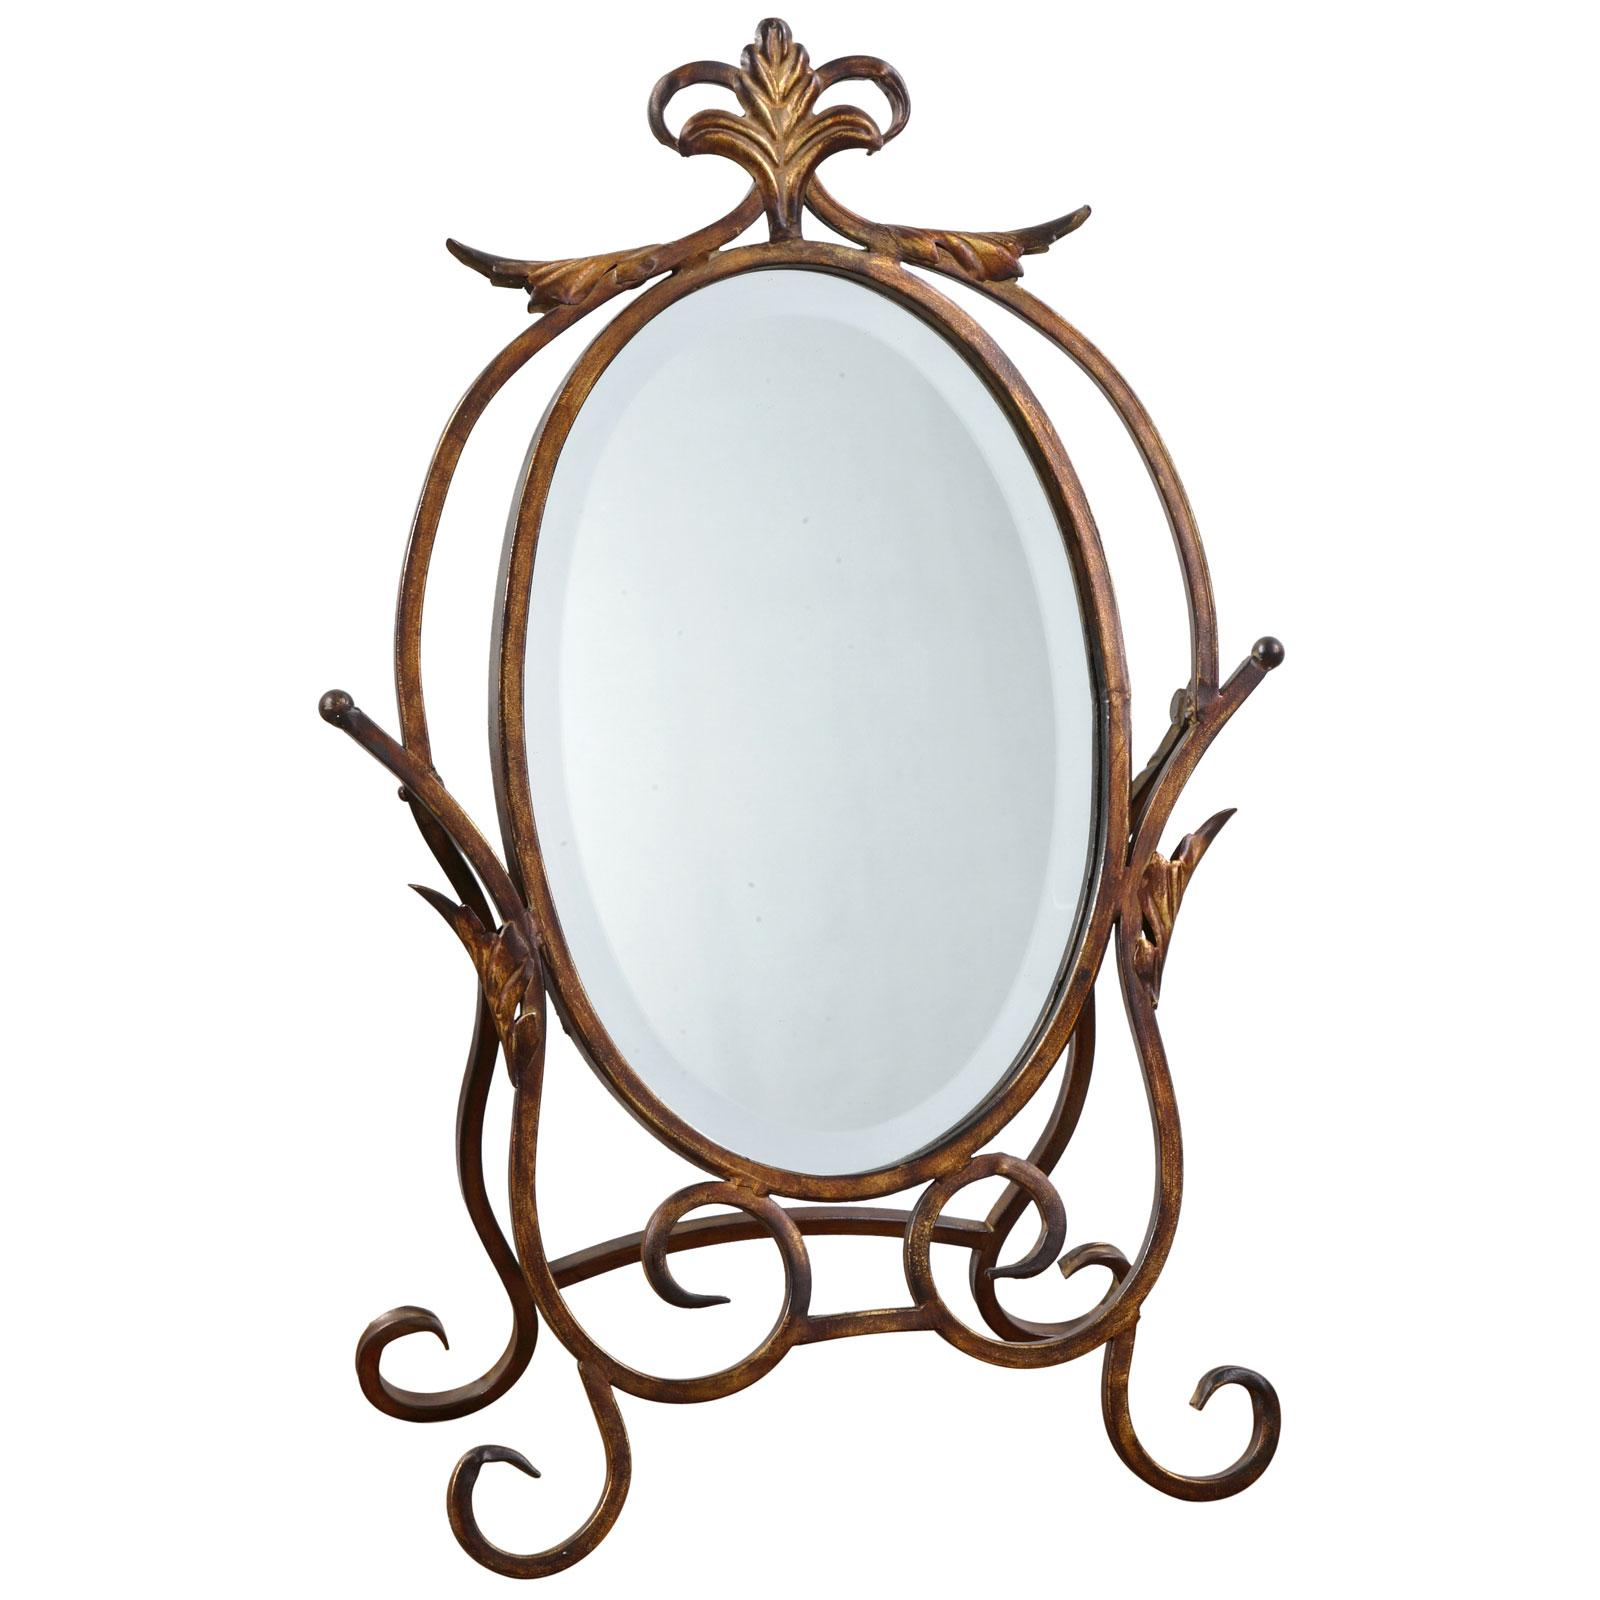 Caron Metal Bath Mirror - Bathroom Mirrors at Simply Mirrors